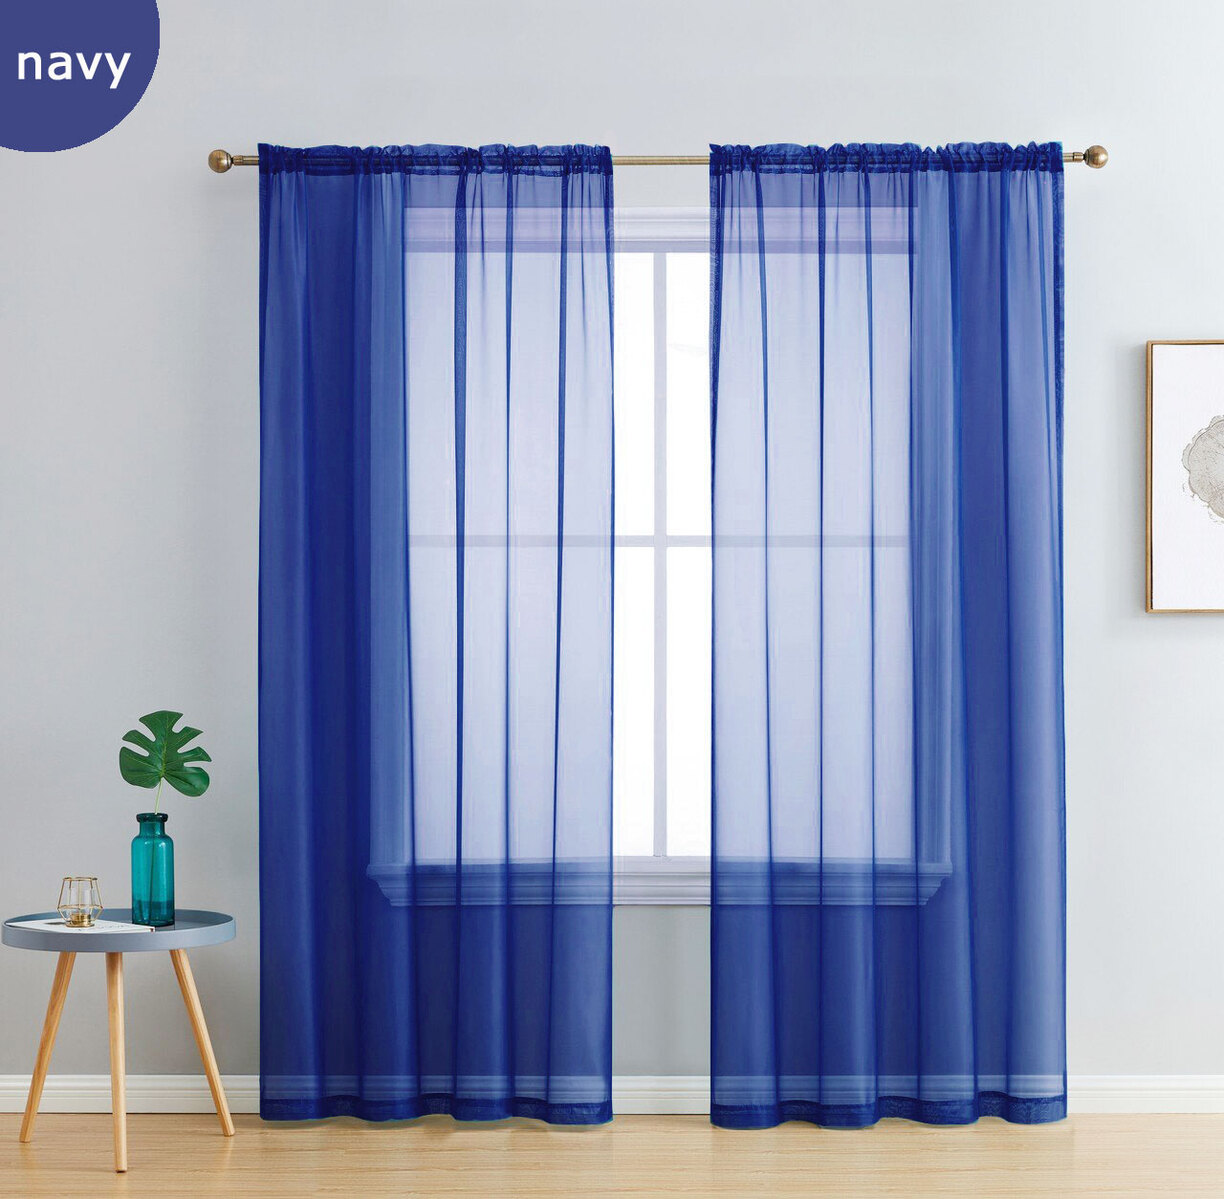 Luxton Rod Pocket Voile Curtain Single Sheer Curtain Panel Manchester Direct